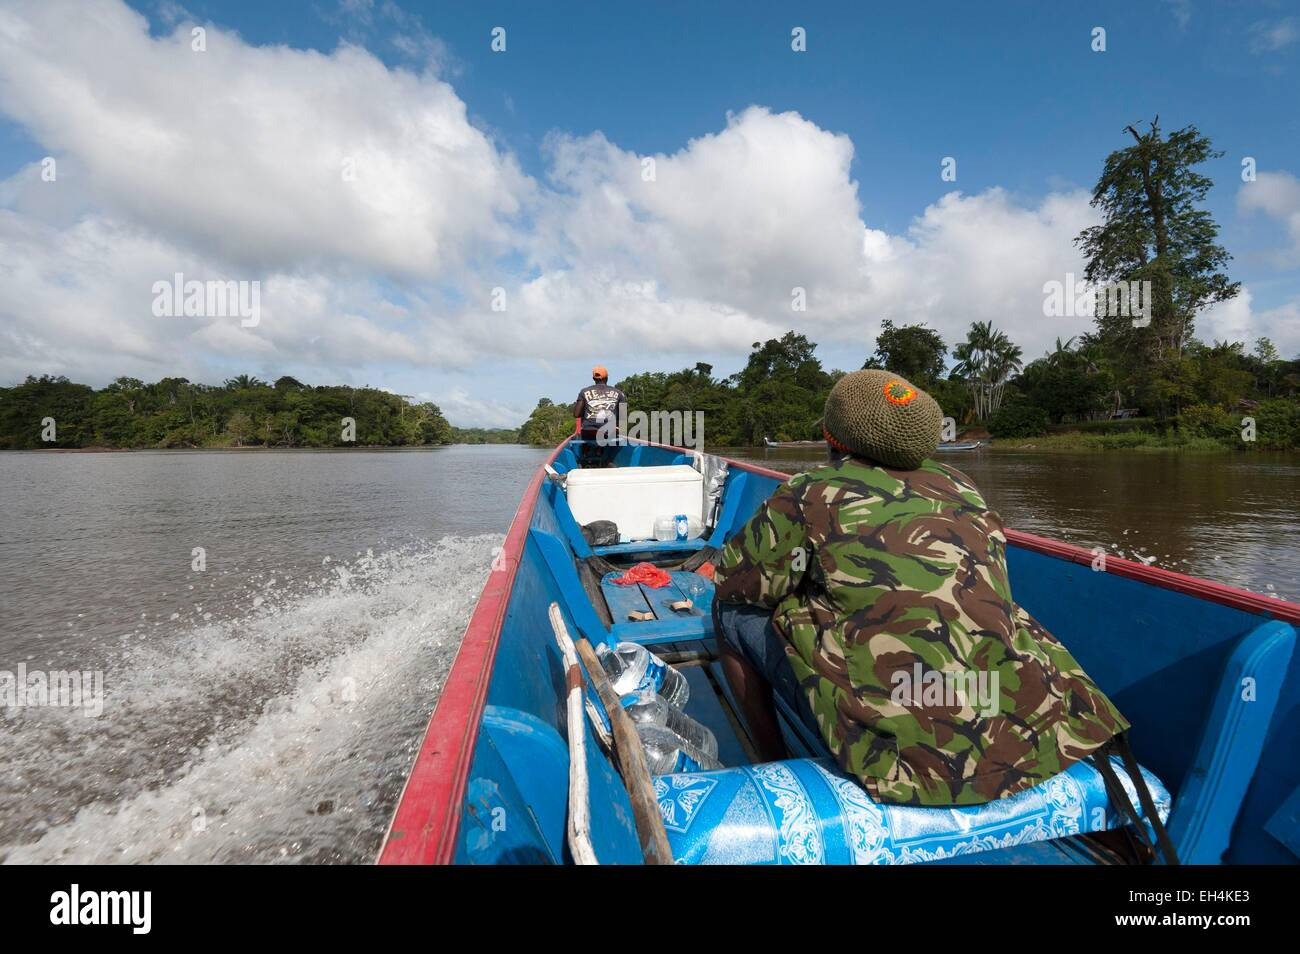 Republic of Suriname, sailing pirogue on Tapanahony River an affluent of Maroni River - Stock Image